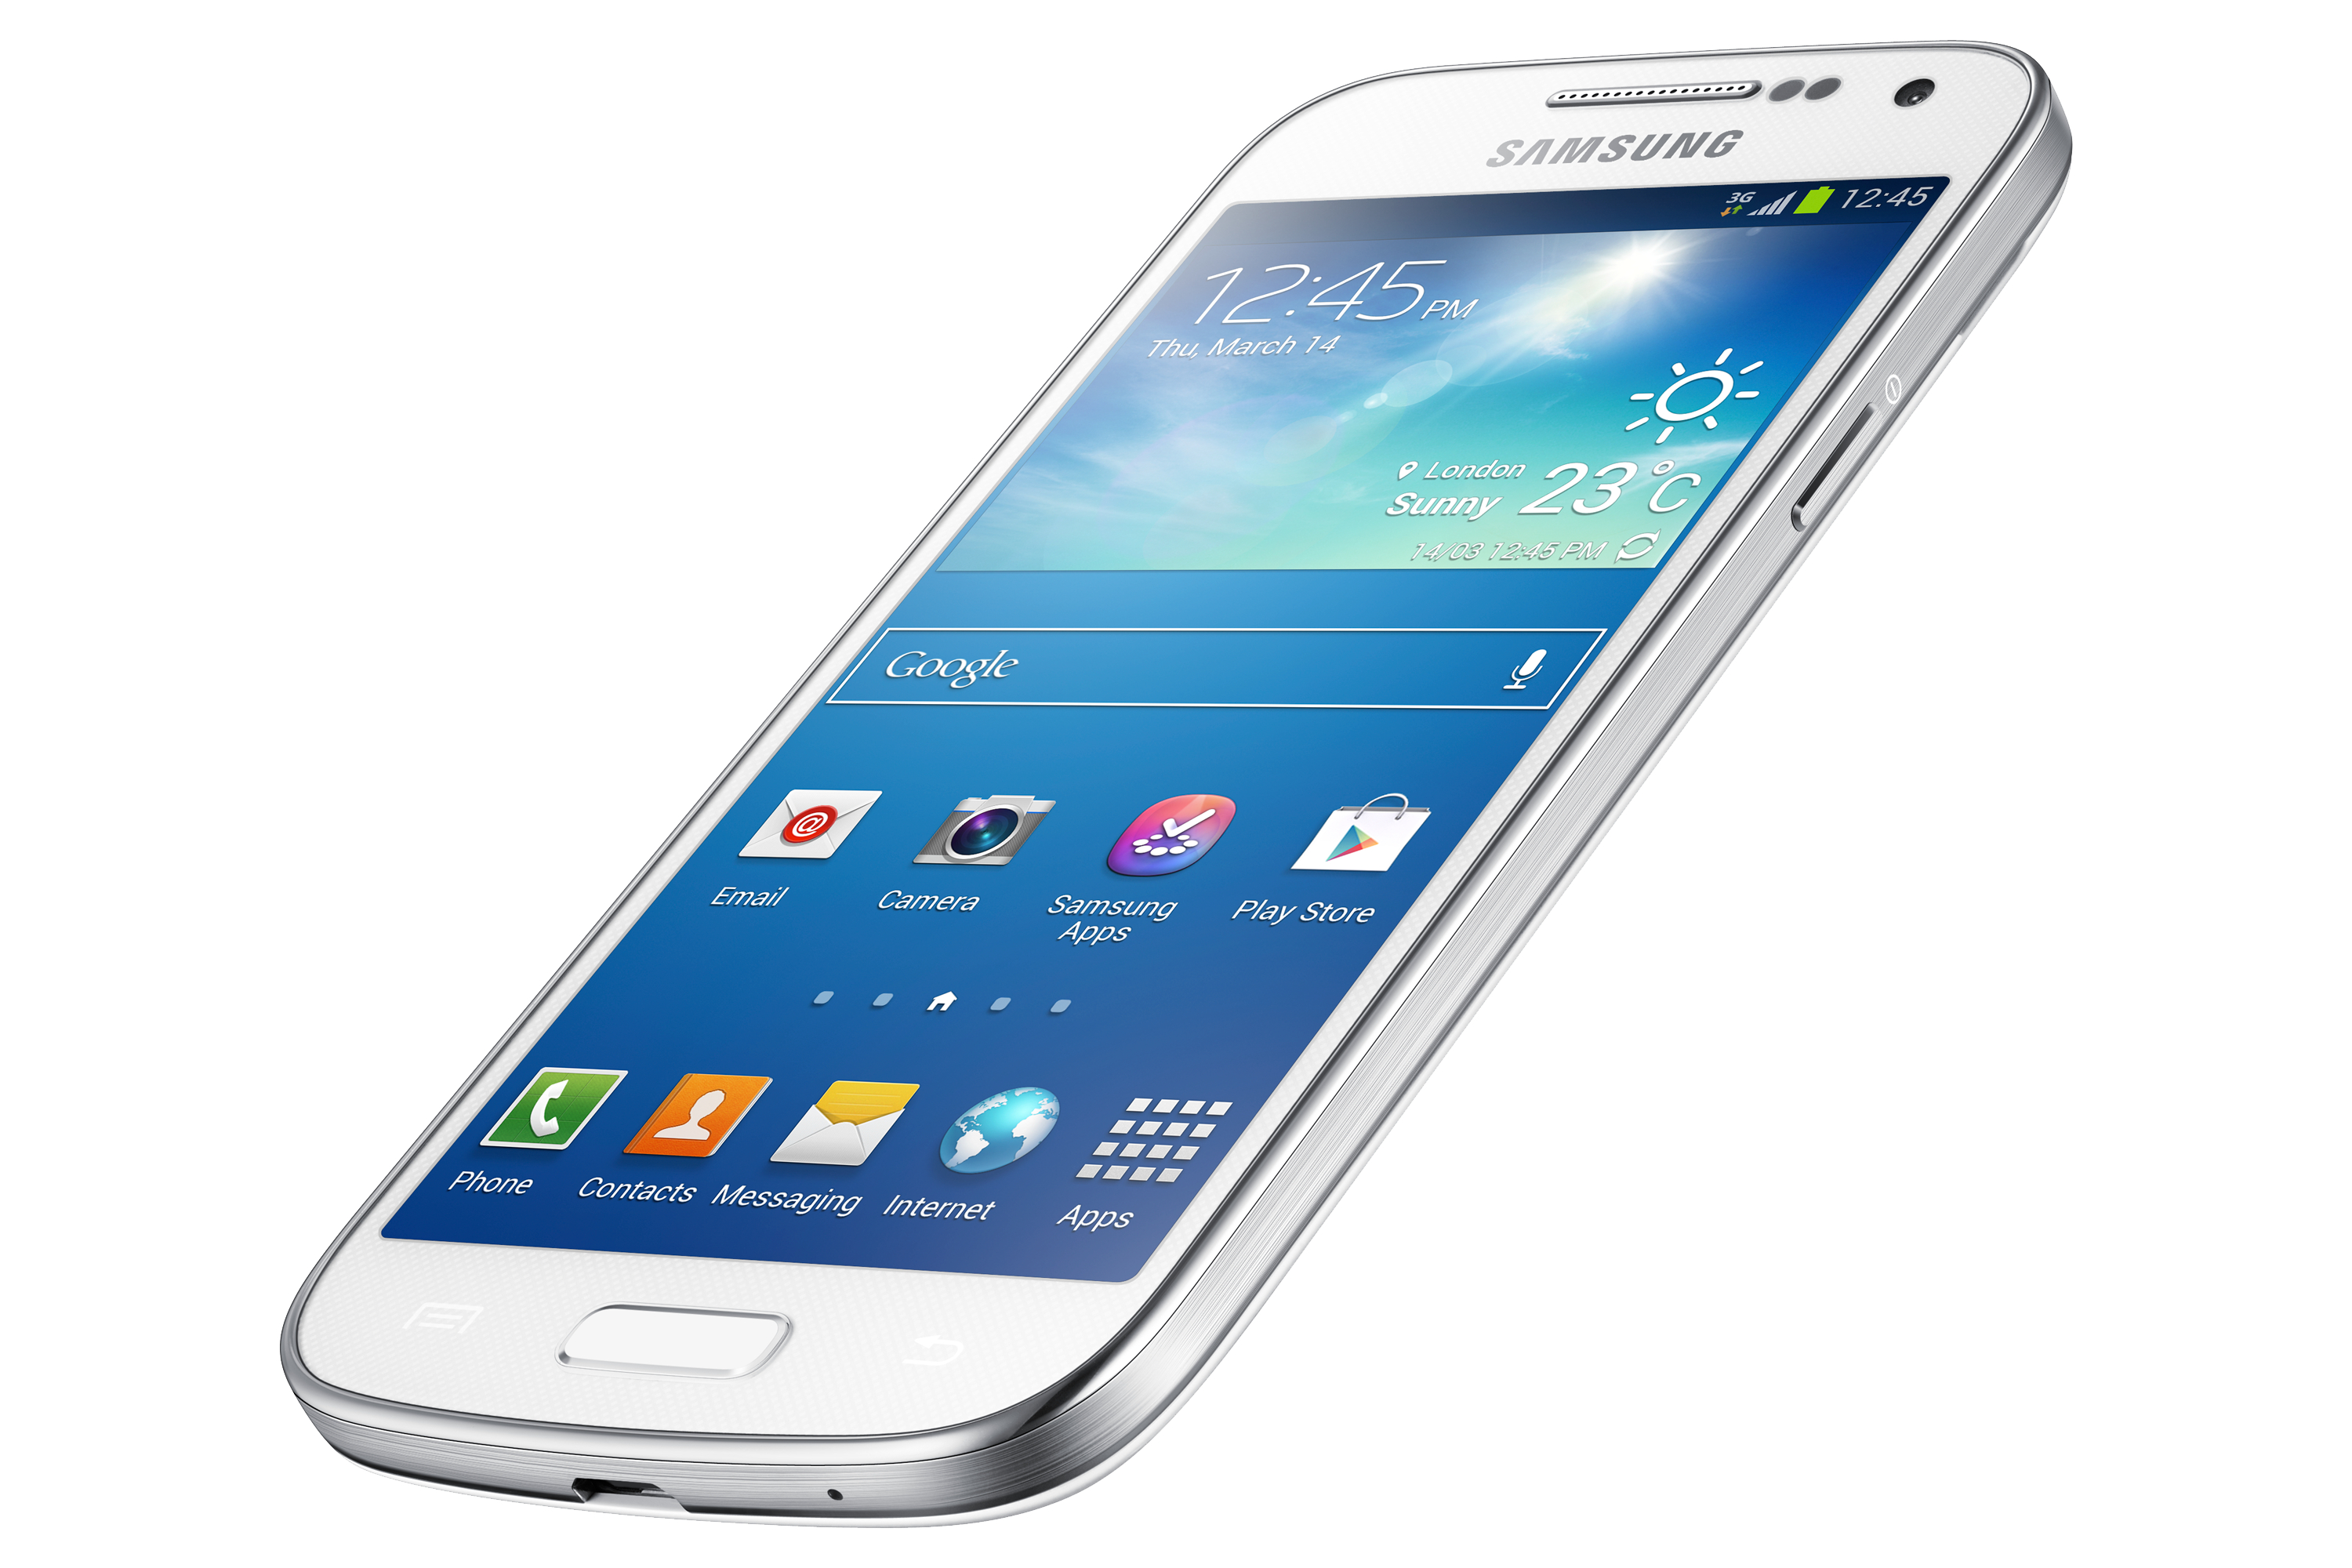 The Galaxy S4 mini will be the first device from the major U.S. carriers to support VoLTE, but not the last.